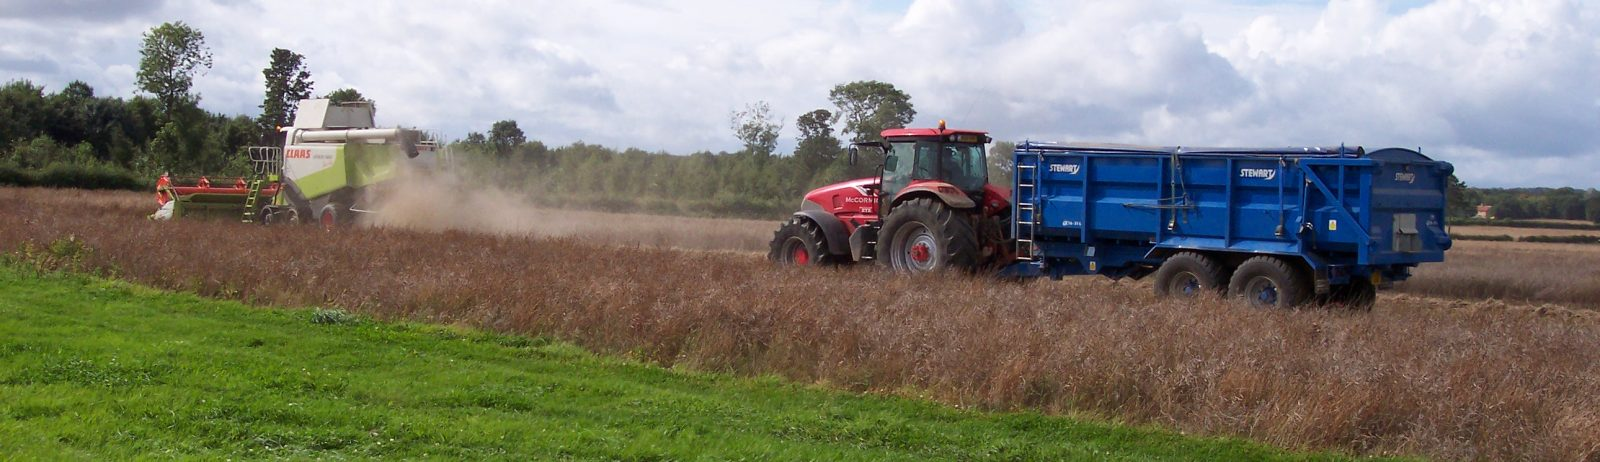 picture_of_field_and_tractor